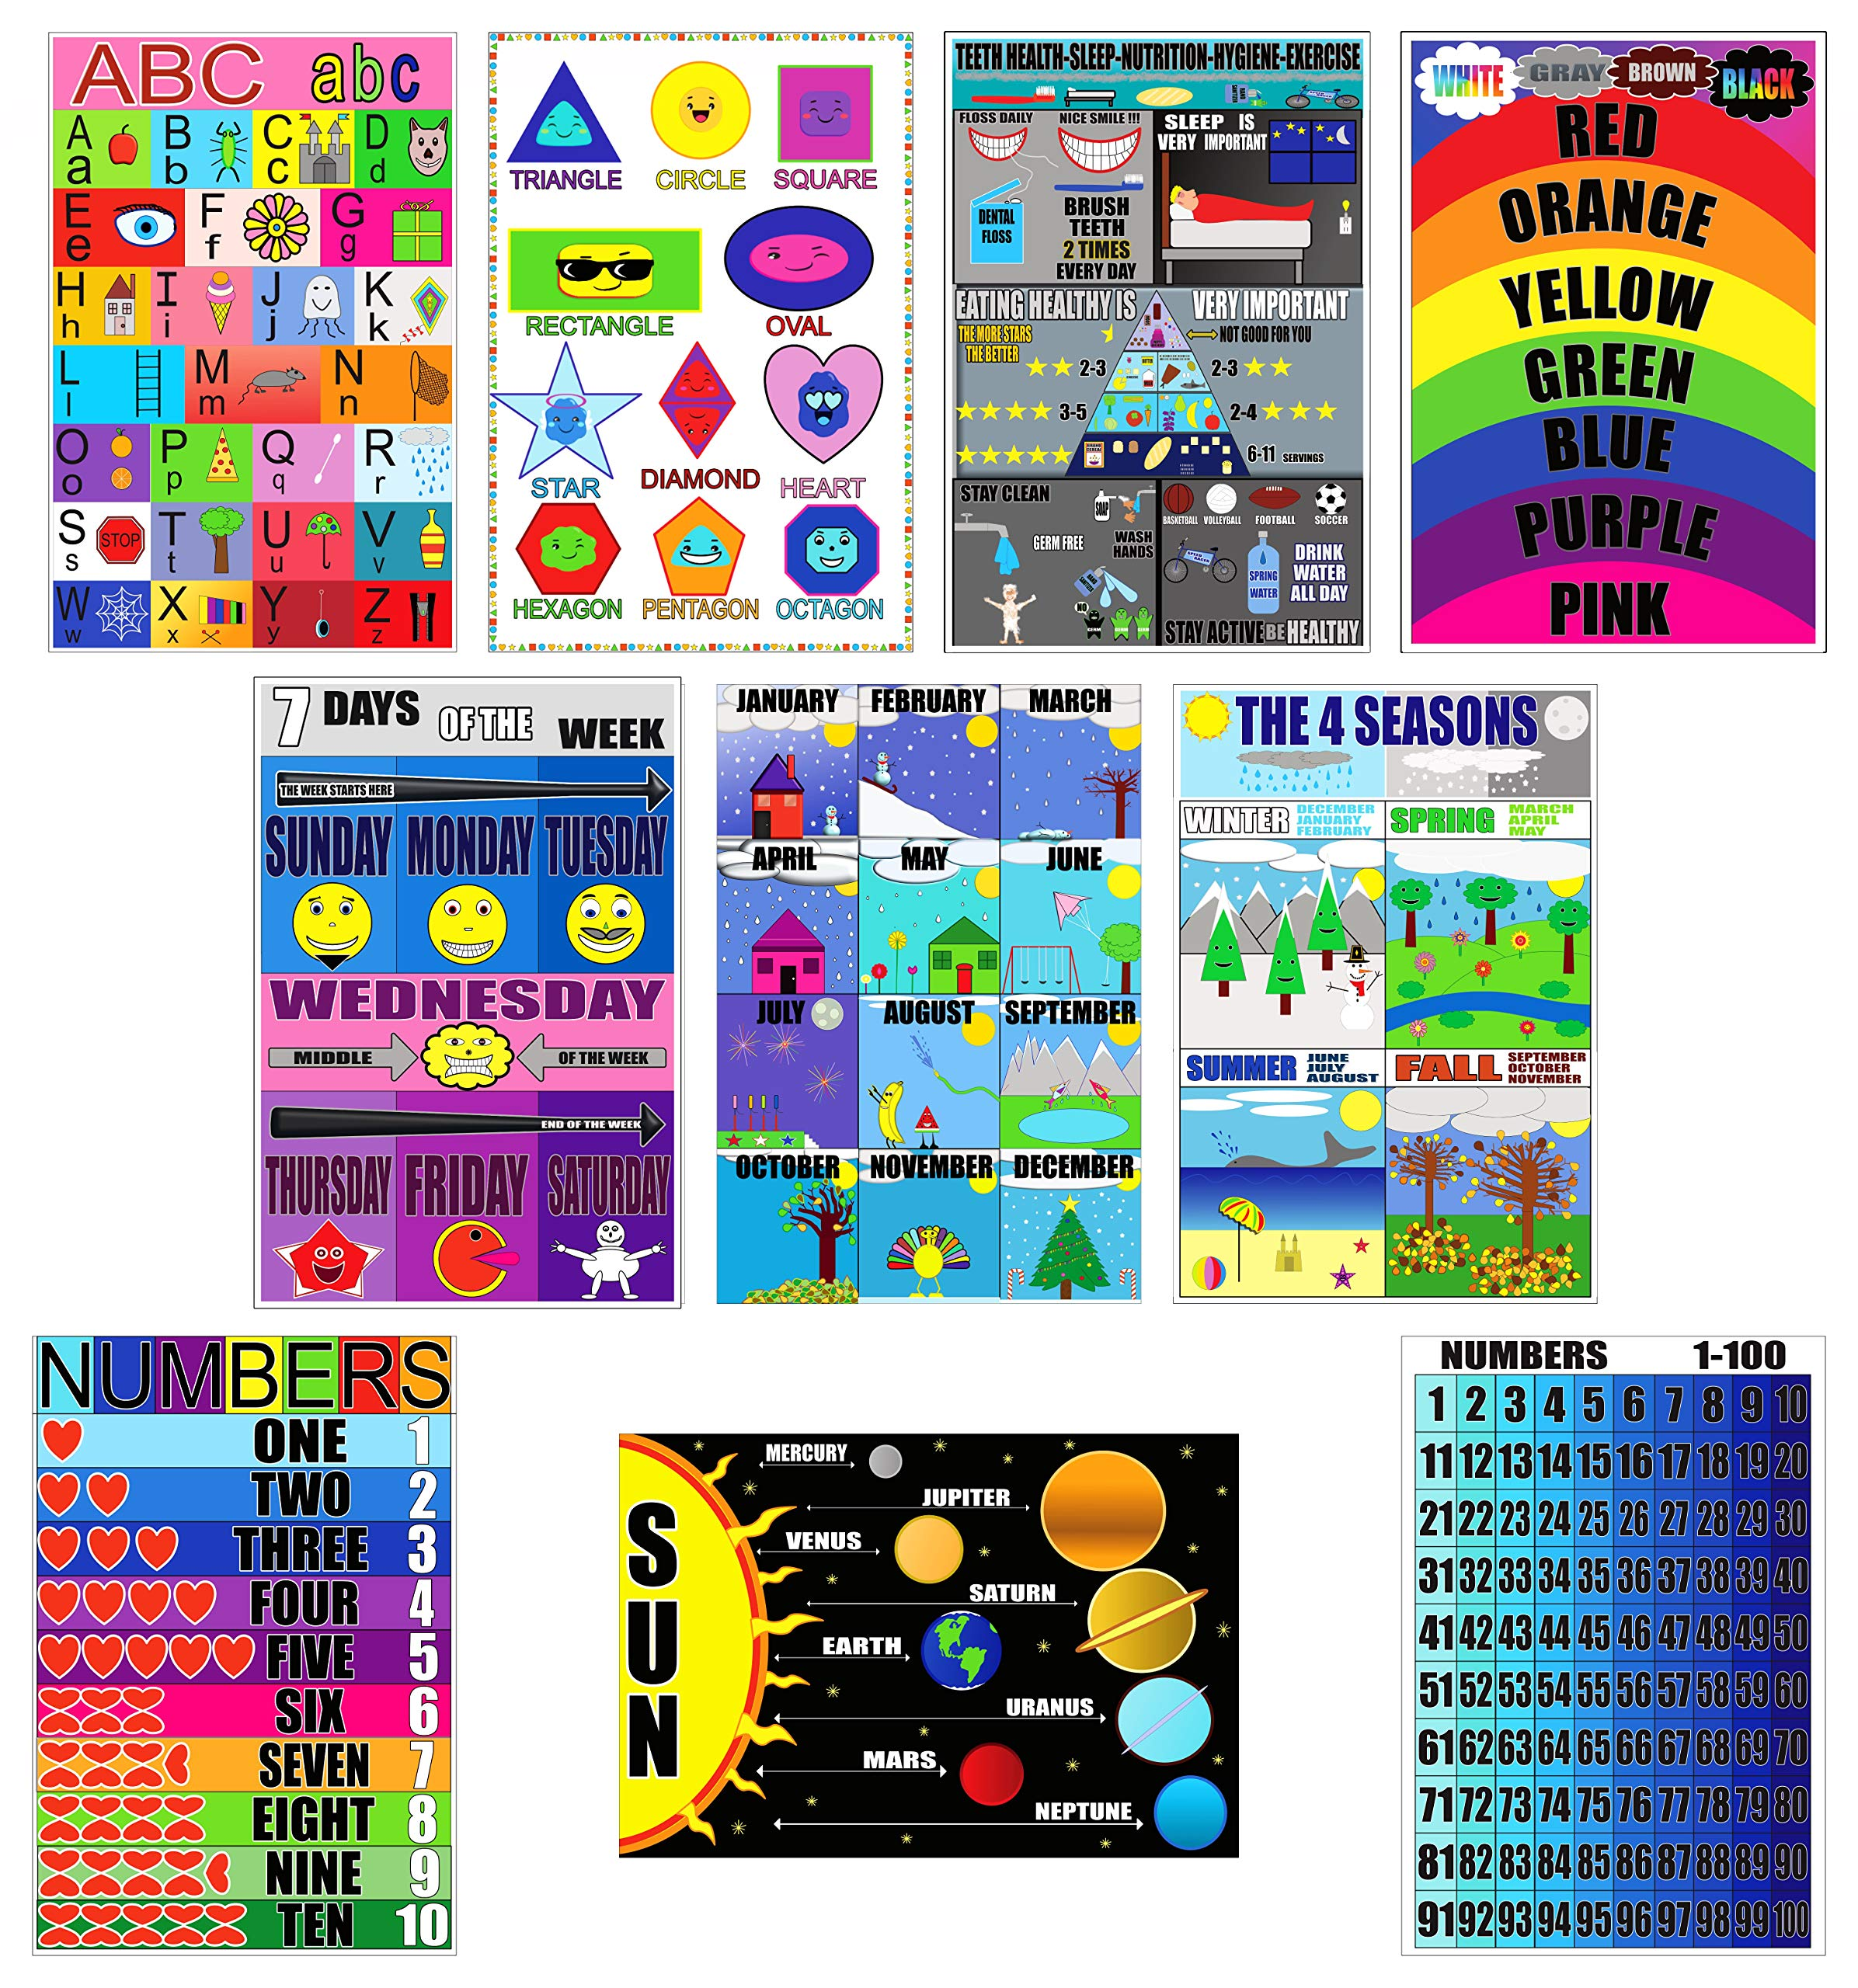 Classroom Posters for Kids and Toddlers | Educational Posters - 10 Laminated | ABC Alphabet - Colors - Shapes - Health - Solar System -Math Number 1-10 & 1-100-Days of The Week-Months-Seasons